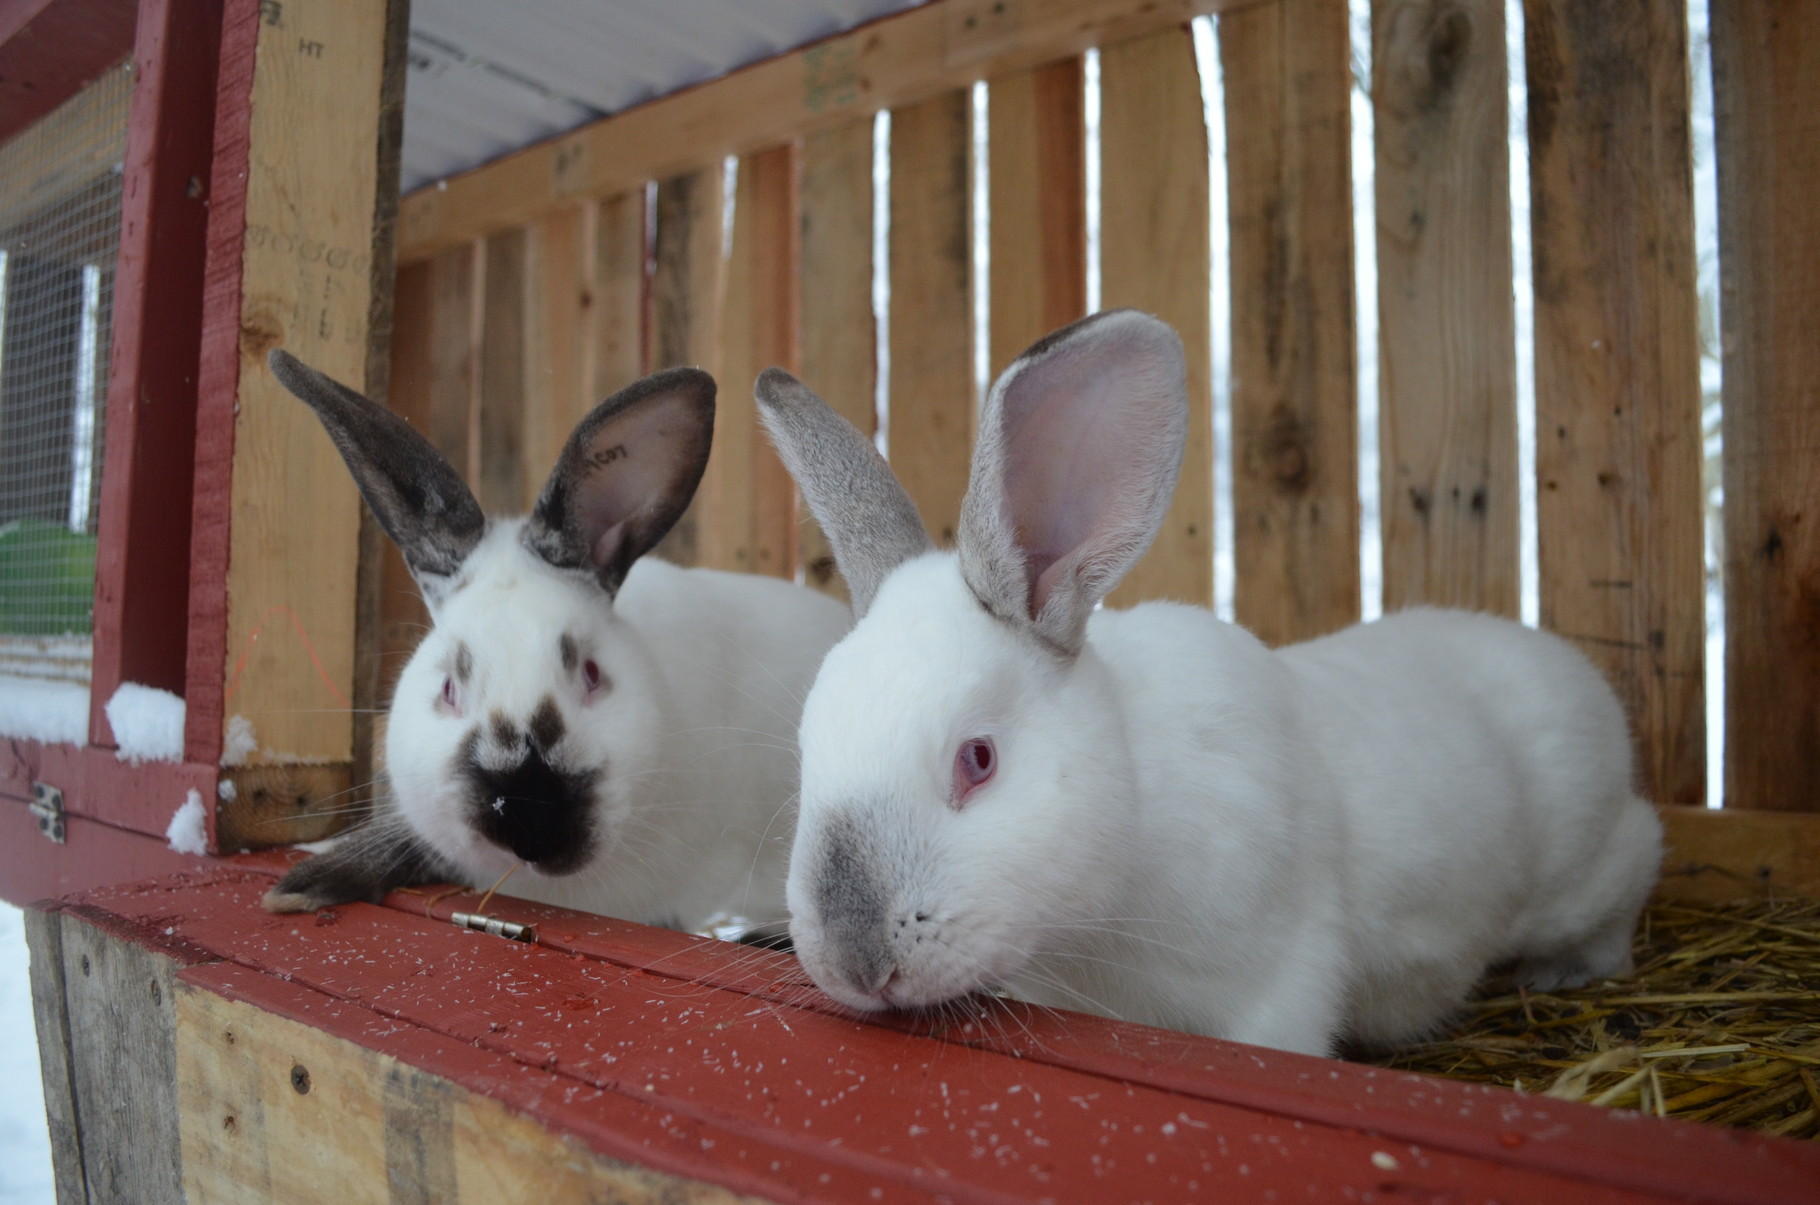 Our Californian rabbits